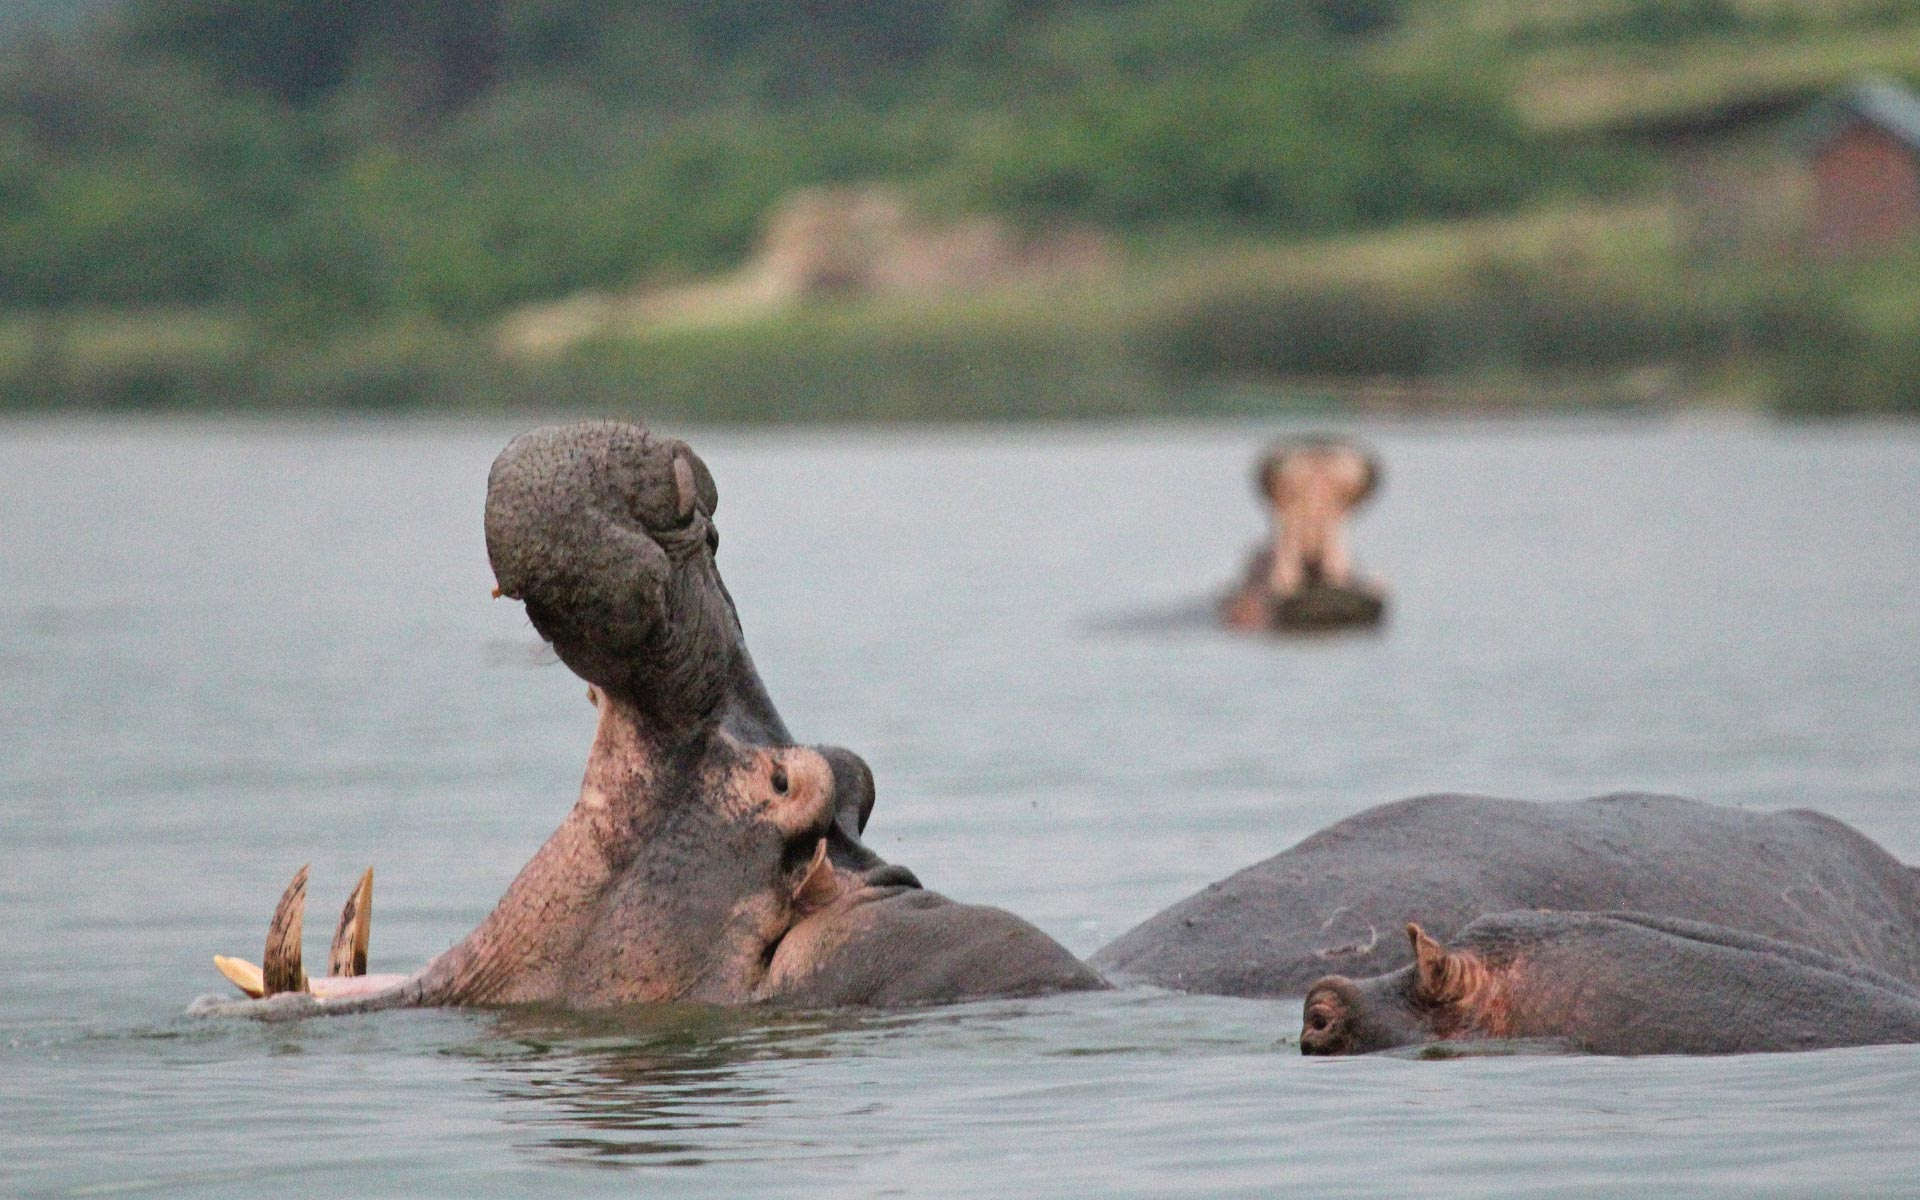 kazinga channel - Queen Elizabeth National Park, Hippo Safari uganda